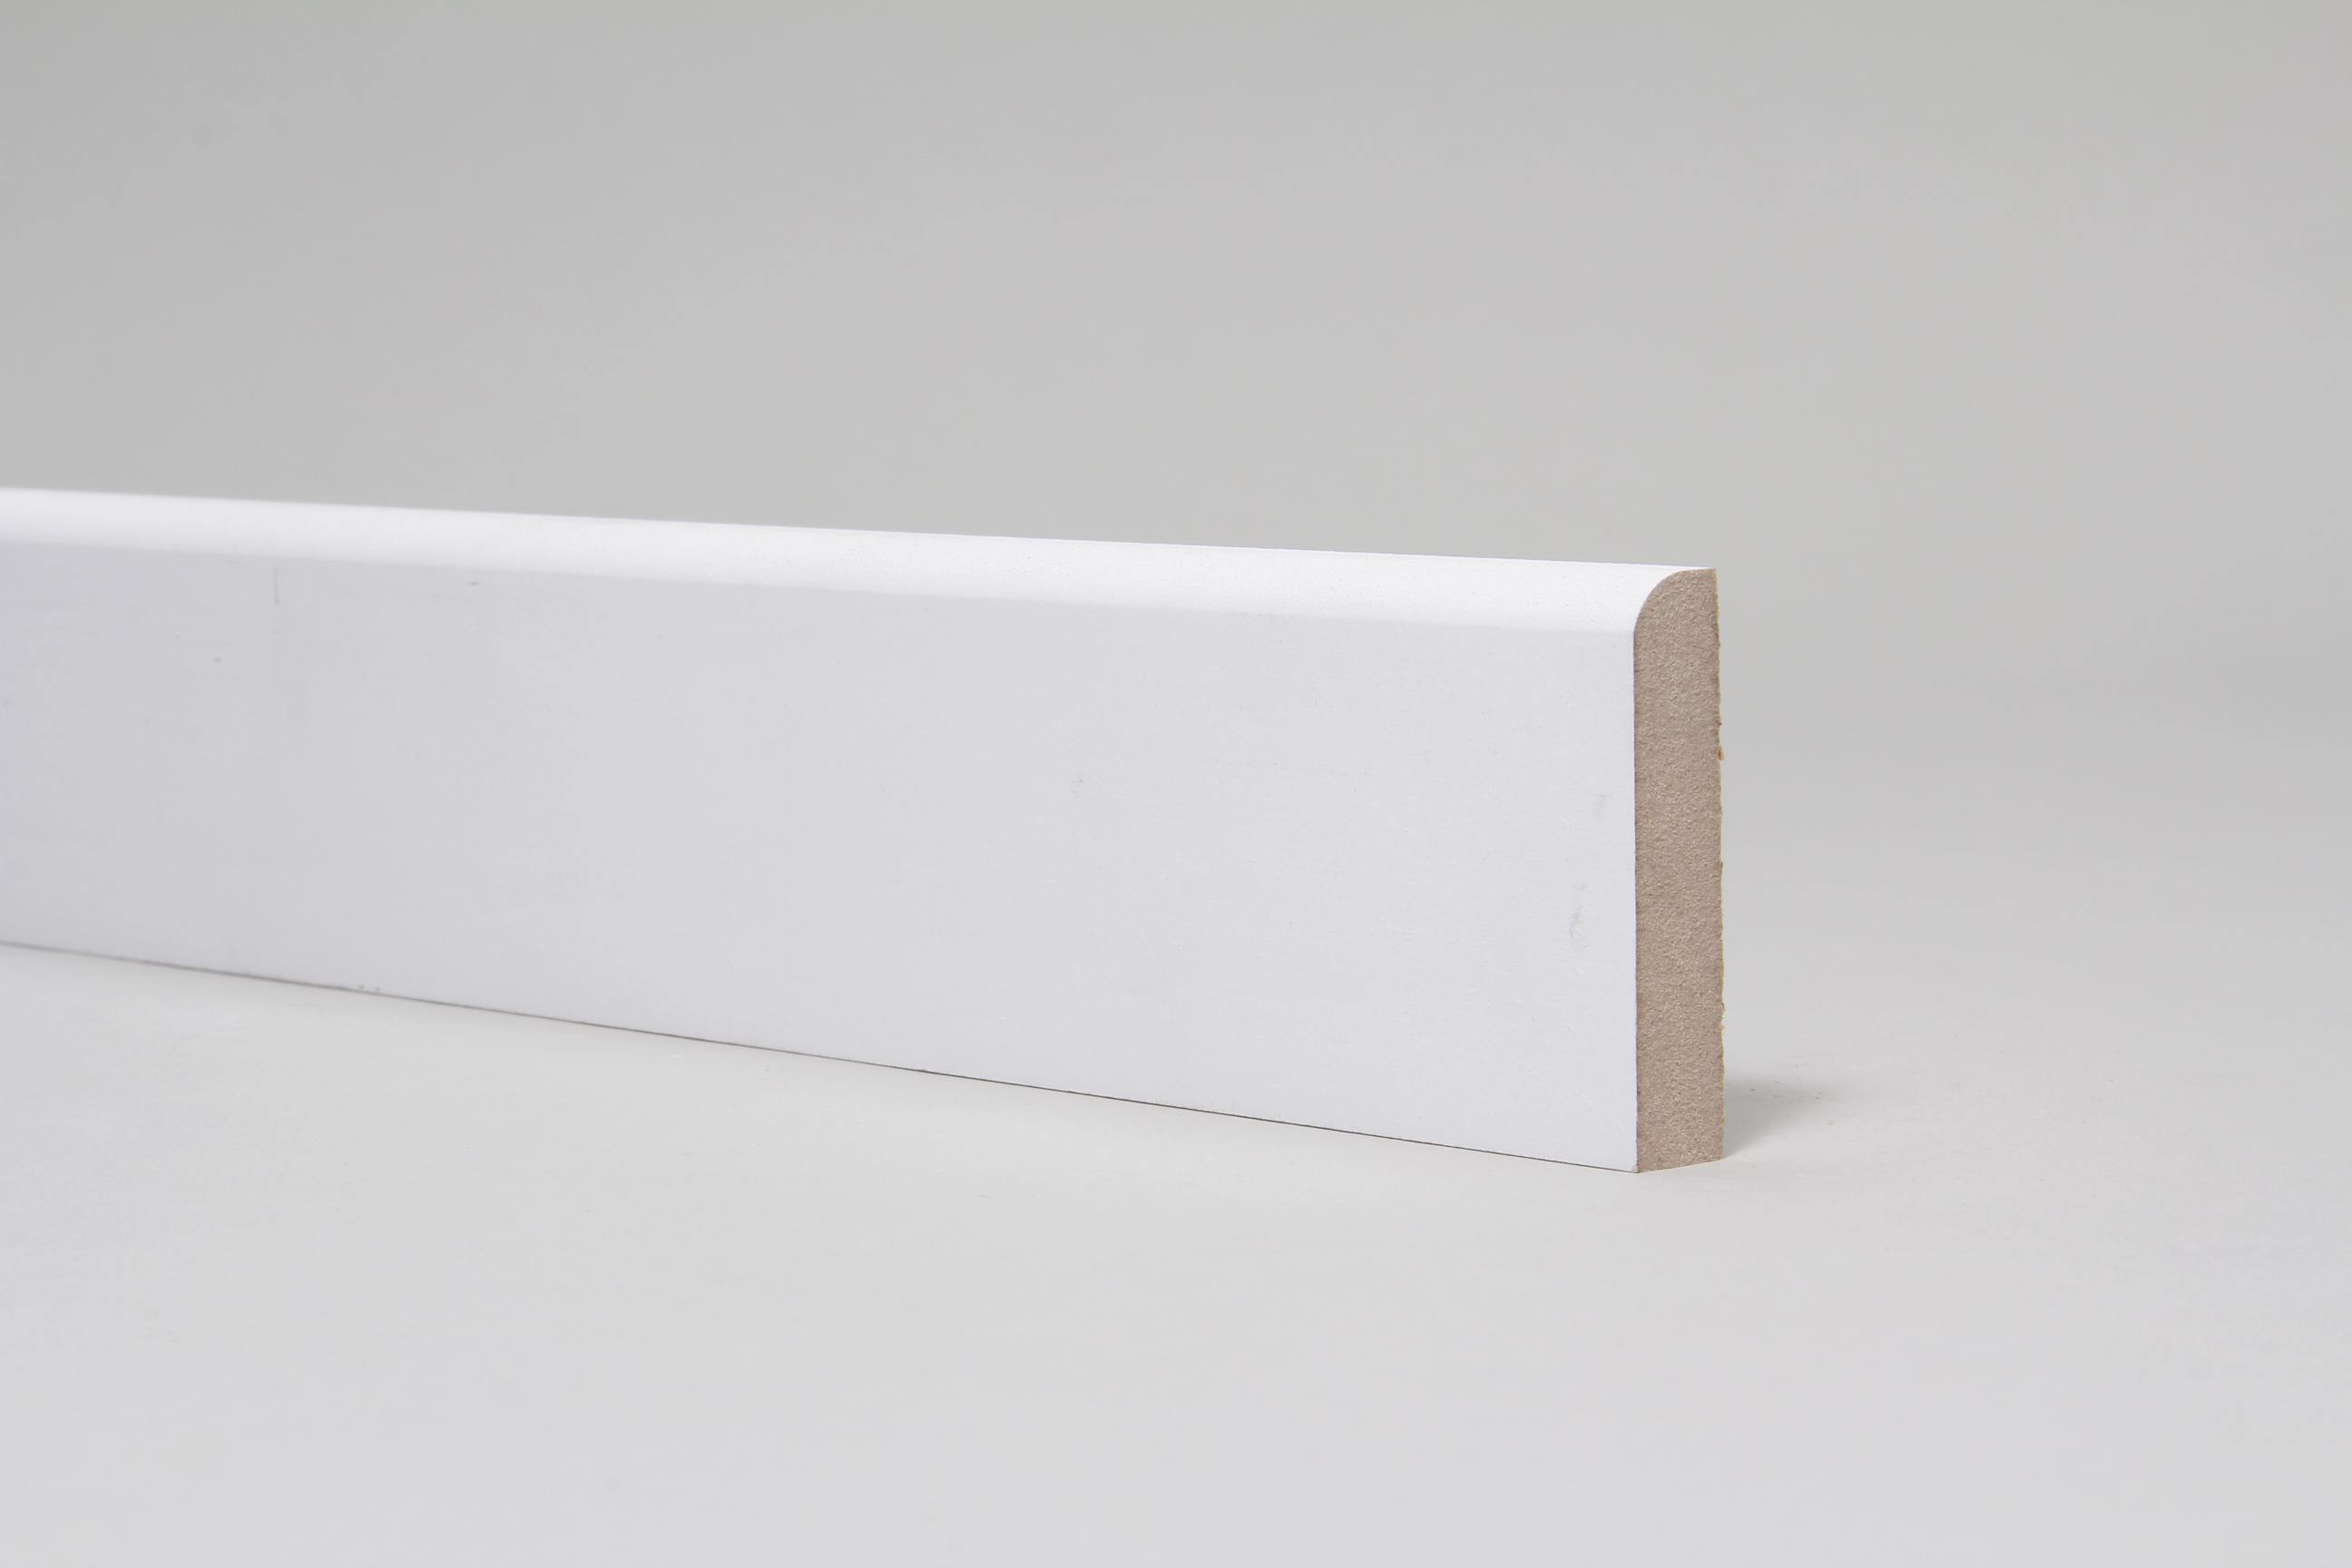 Rounded One Edge 15mm x 68mm Architrave Set Primed